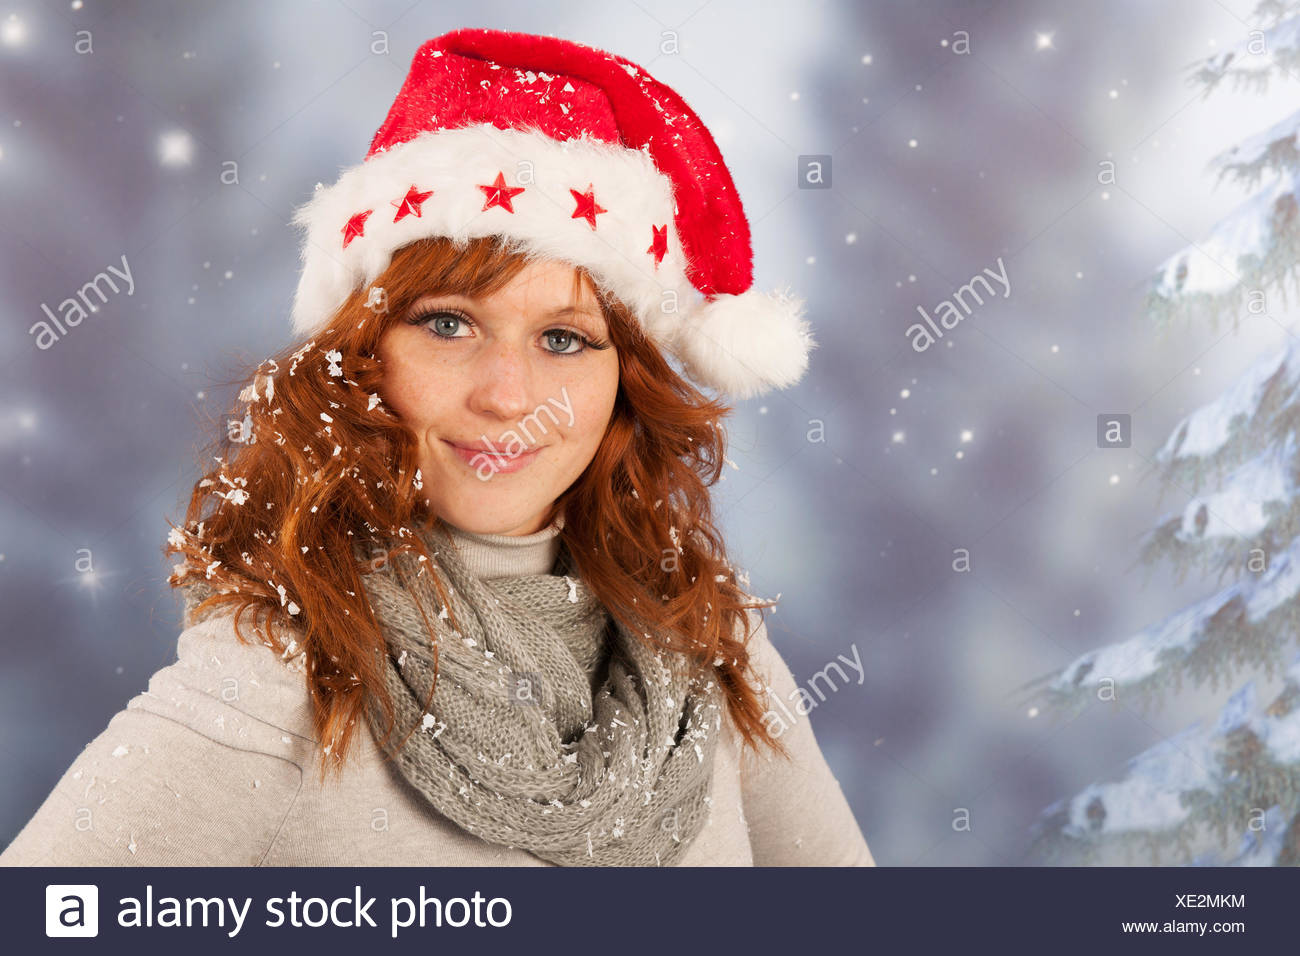 6143aa6029f63 Winter woman with hat Santa Claus Stock Photo  284031208 - Alamy